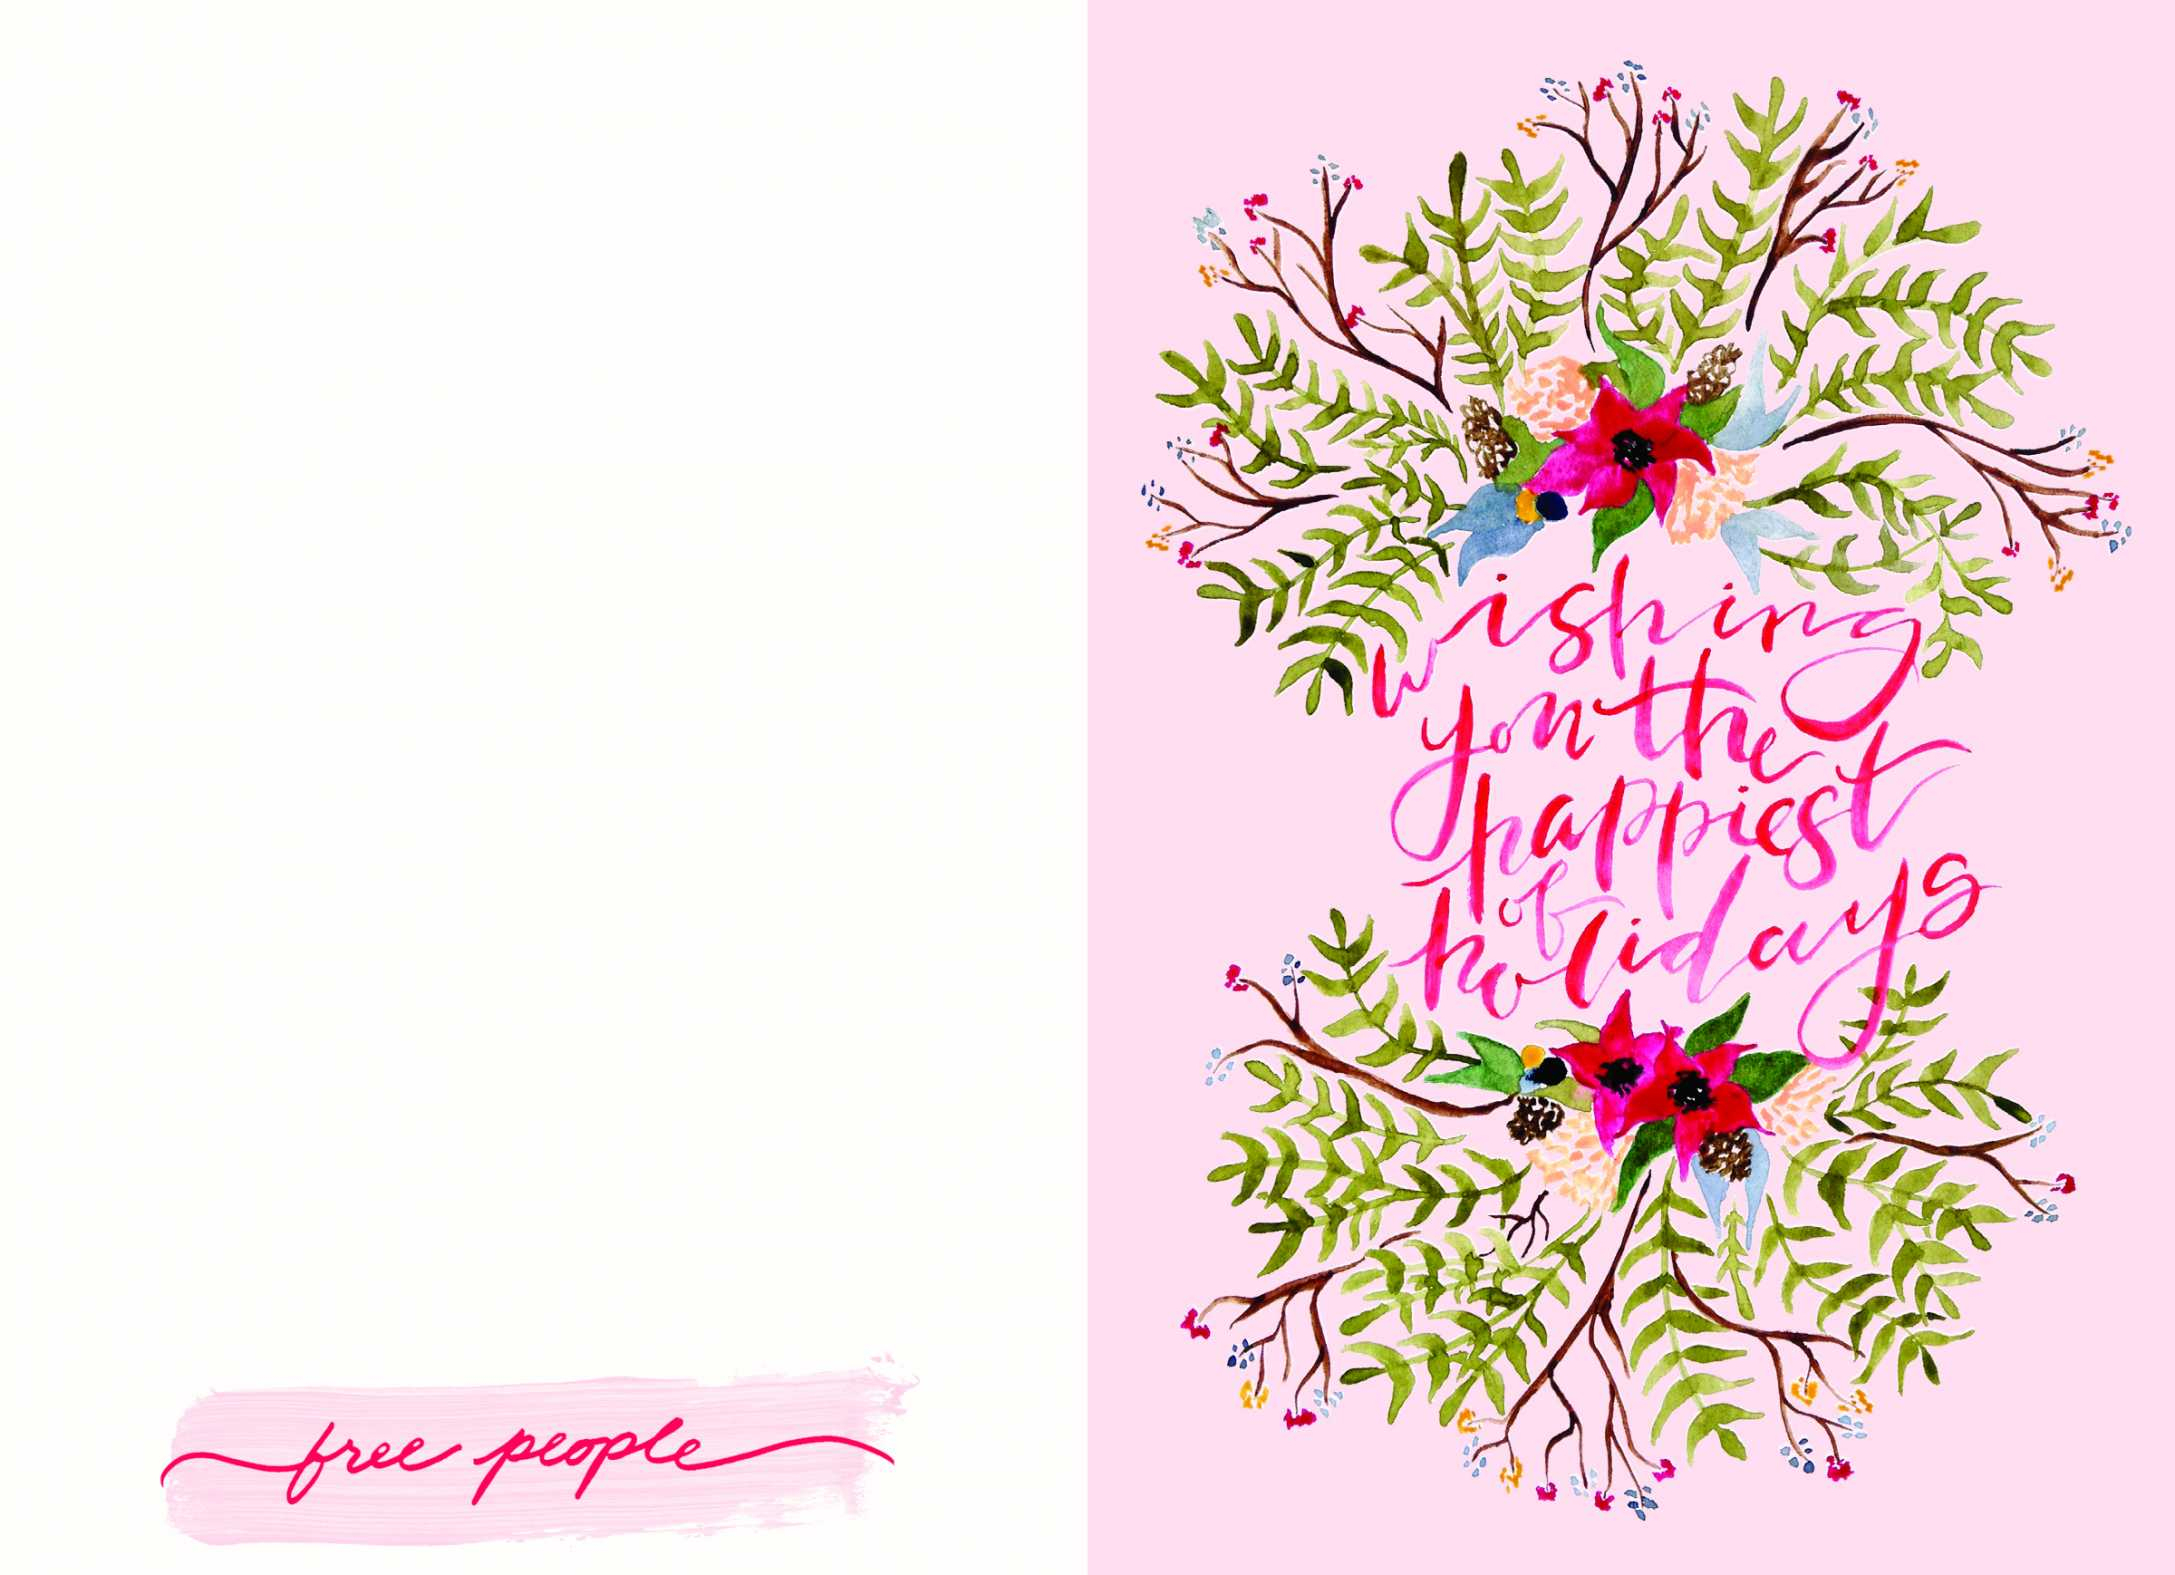 Free Printable Holiday Cards Free People Holiday Card Luxury - Make A Holiday Card For Free Printable